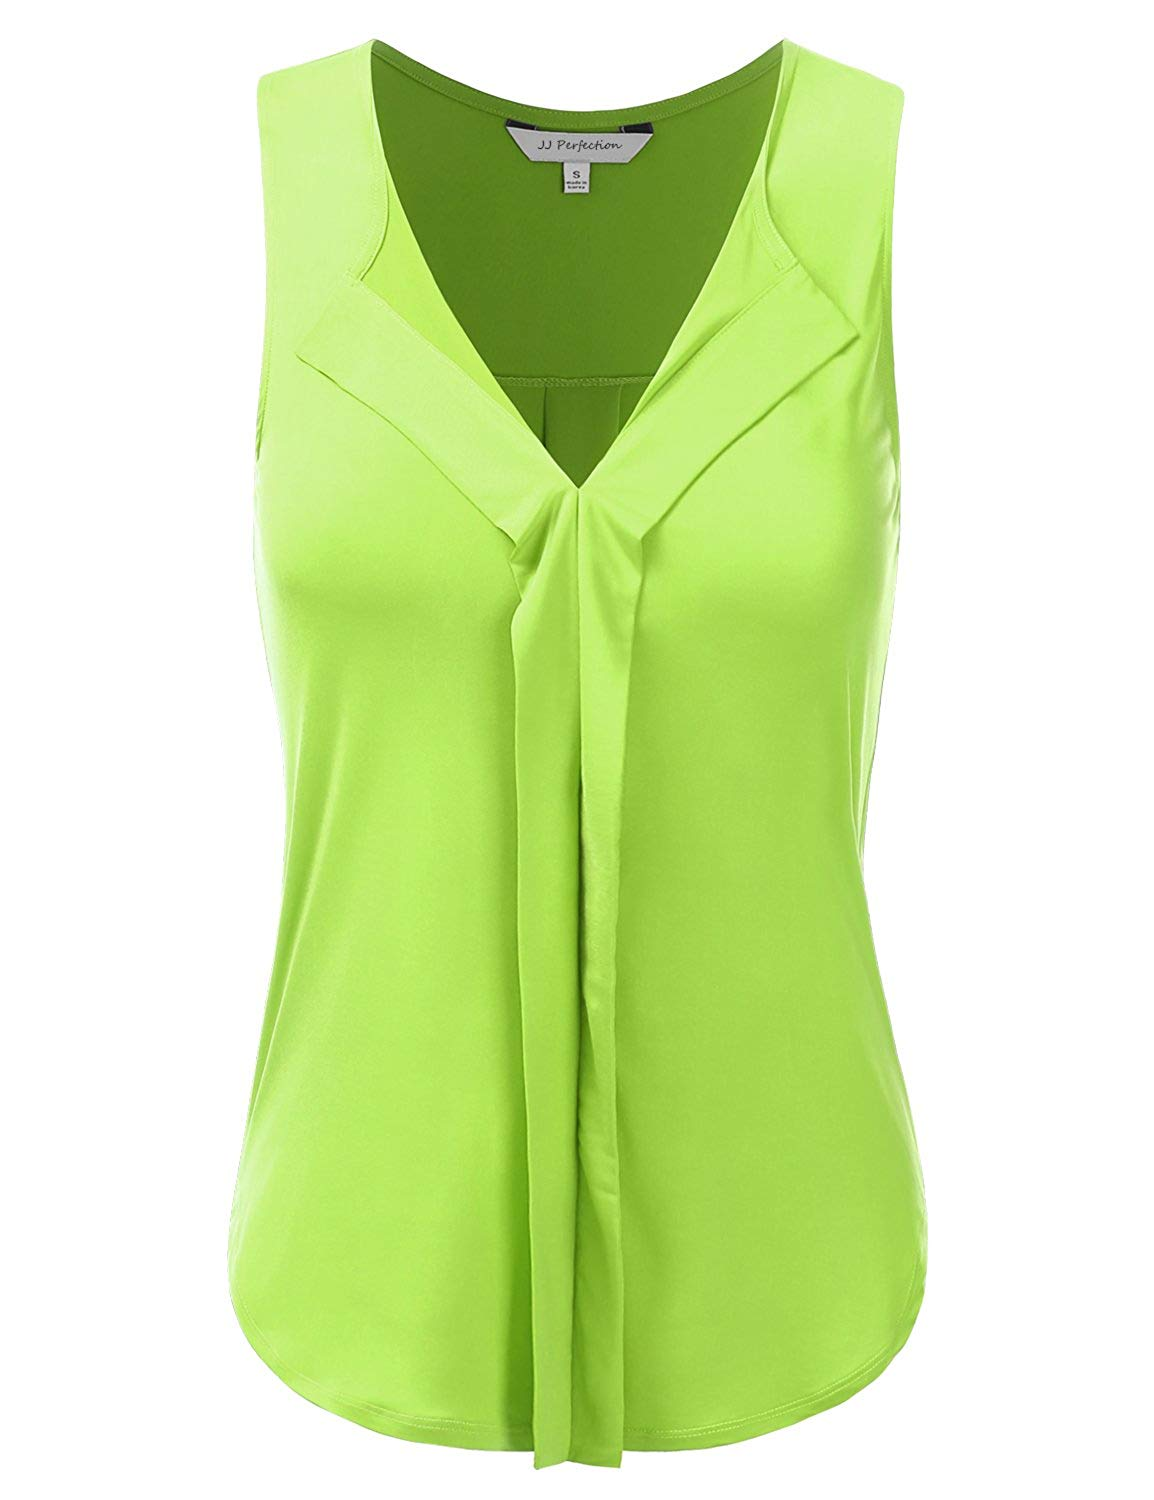 JJ Perfection Womens Sleeveless V-Neck Double Pleats Lycra Blouse Tank Top